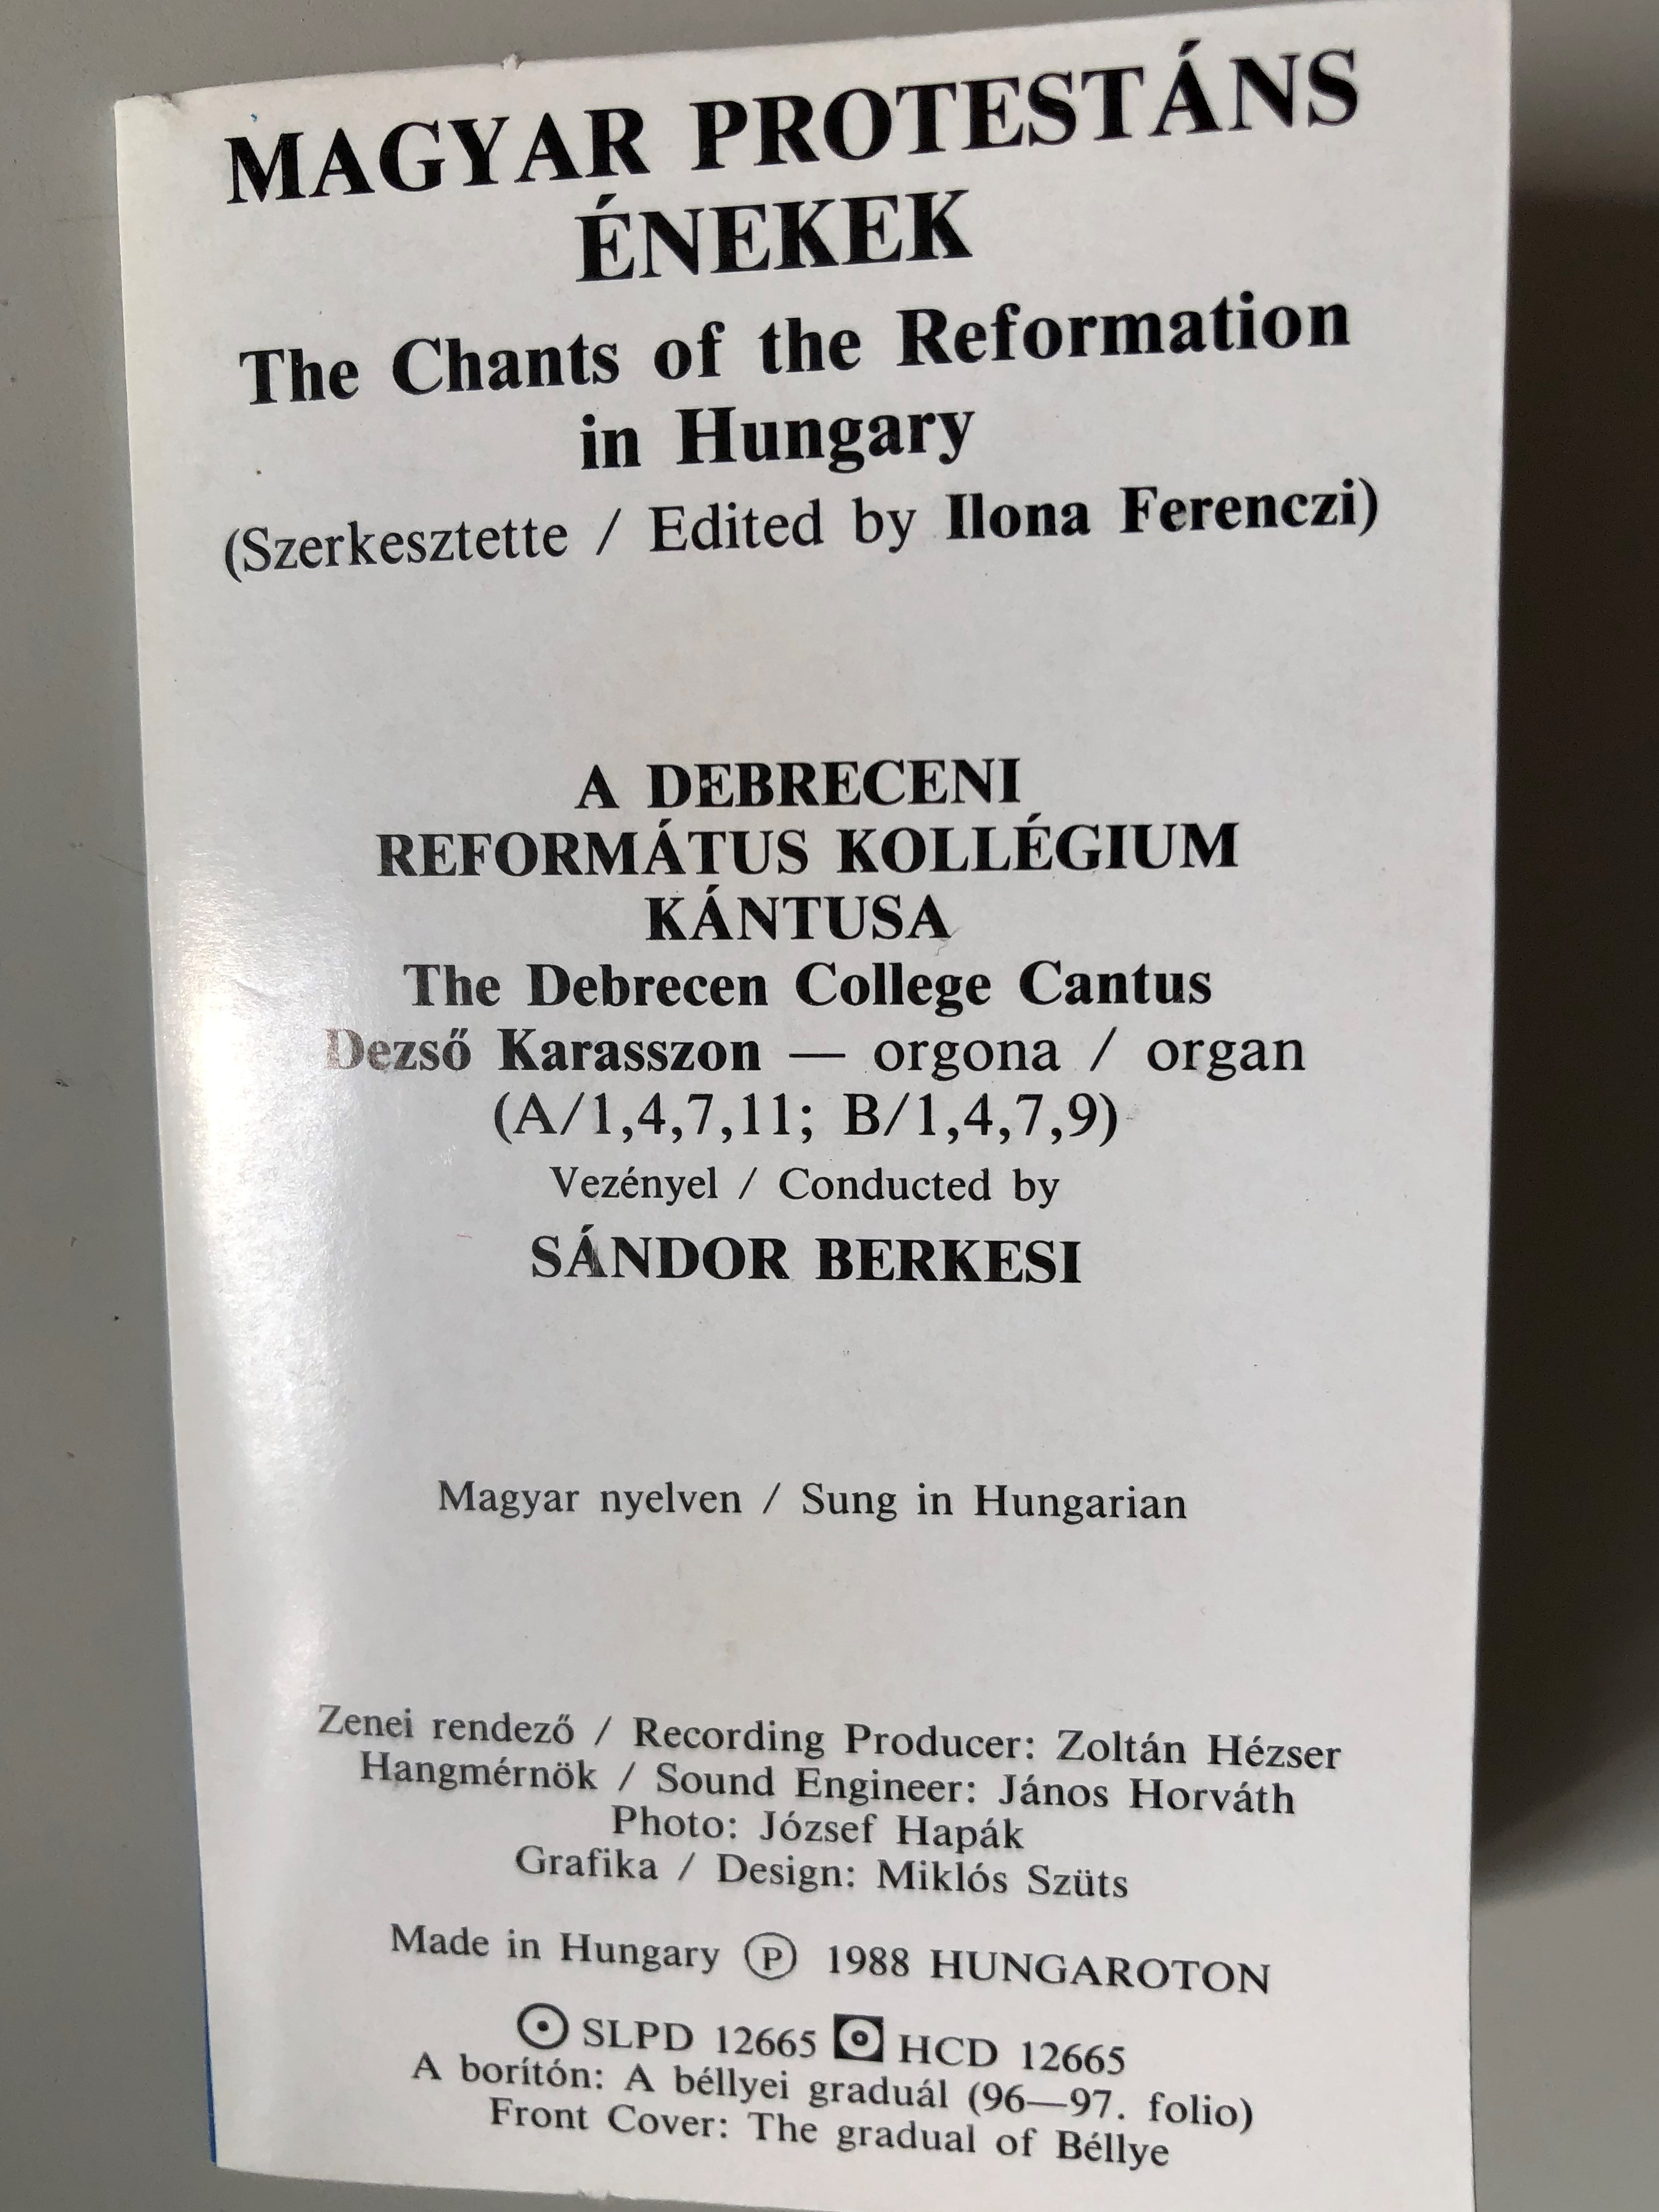 the-chants-of-the-reformation-in-hungary-christmas-easter-the-debrecen-college-cantus-conduczed-s-ndor-berkesi-hungaroton-cassette-stereo-mk-12665-3-.jpg